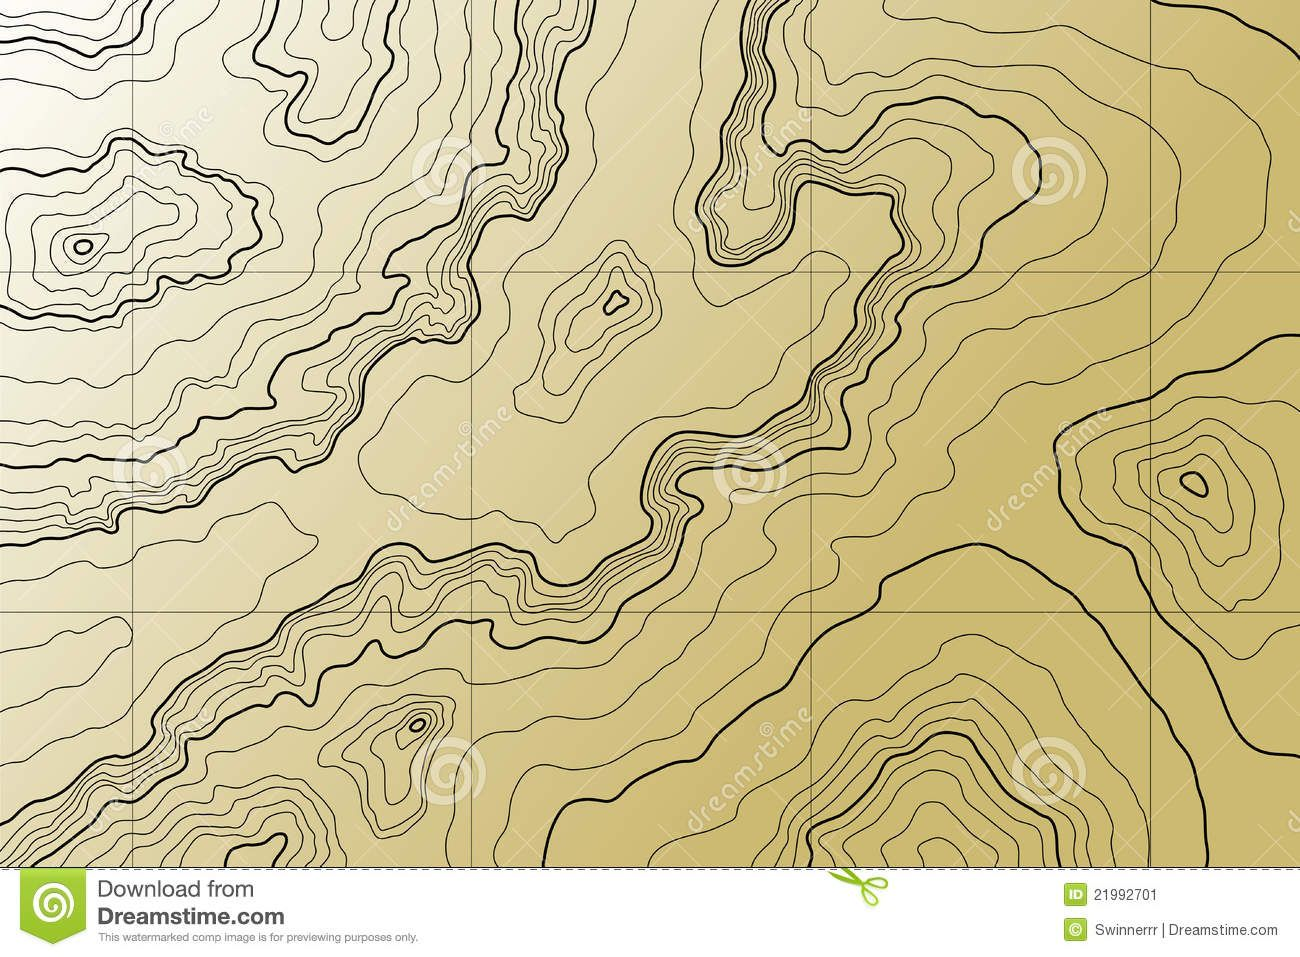 Topographical map google search explorer journal pinterest topographical map google search gumiabroncs Images